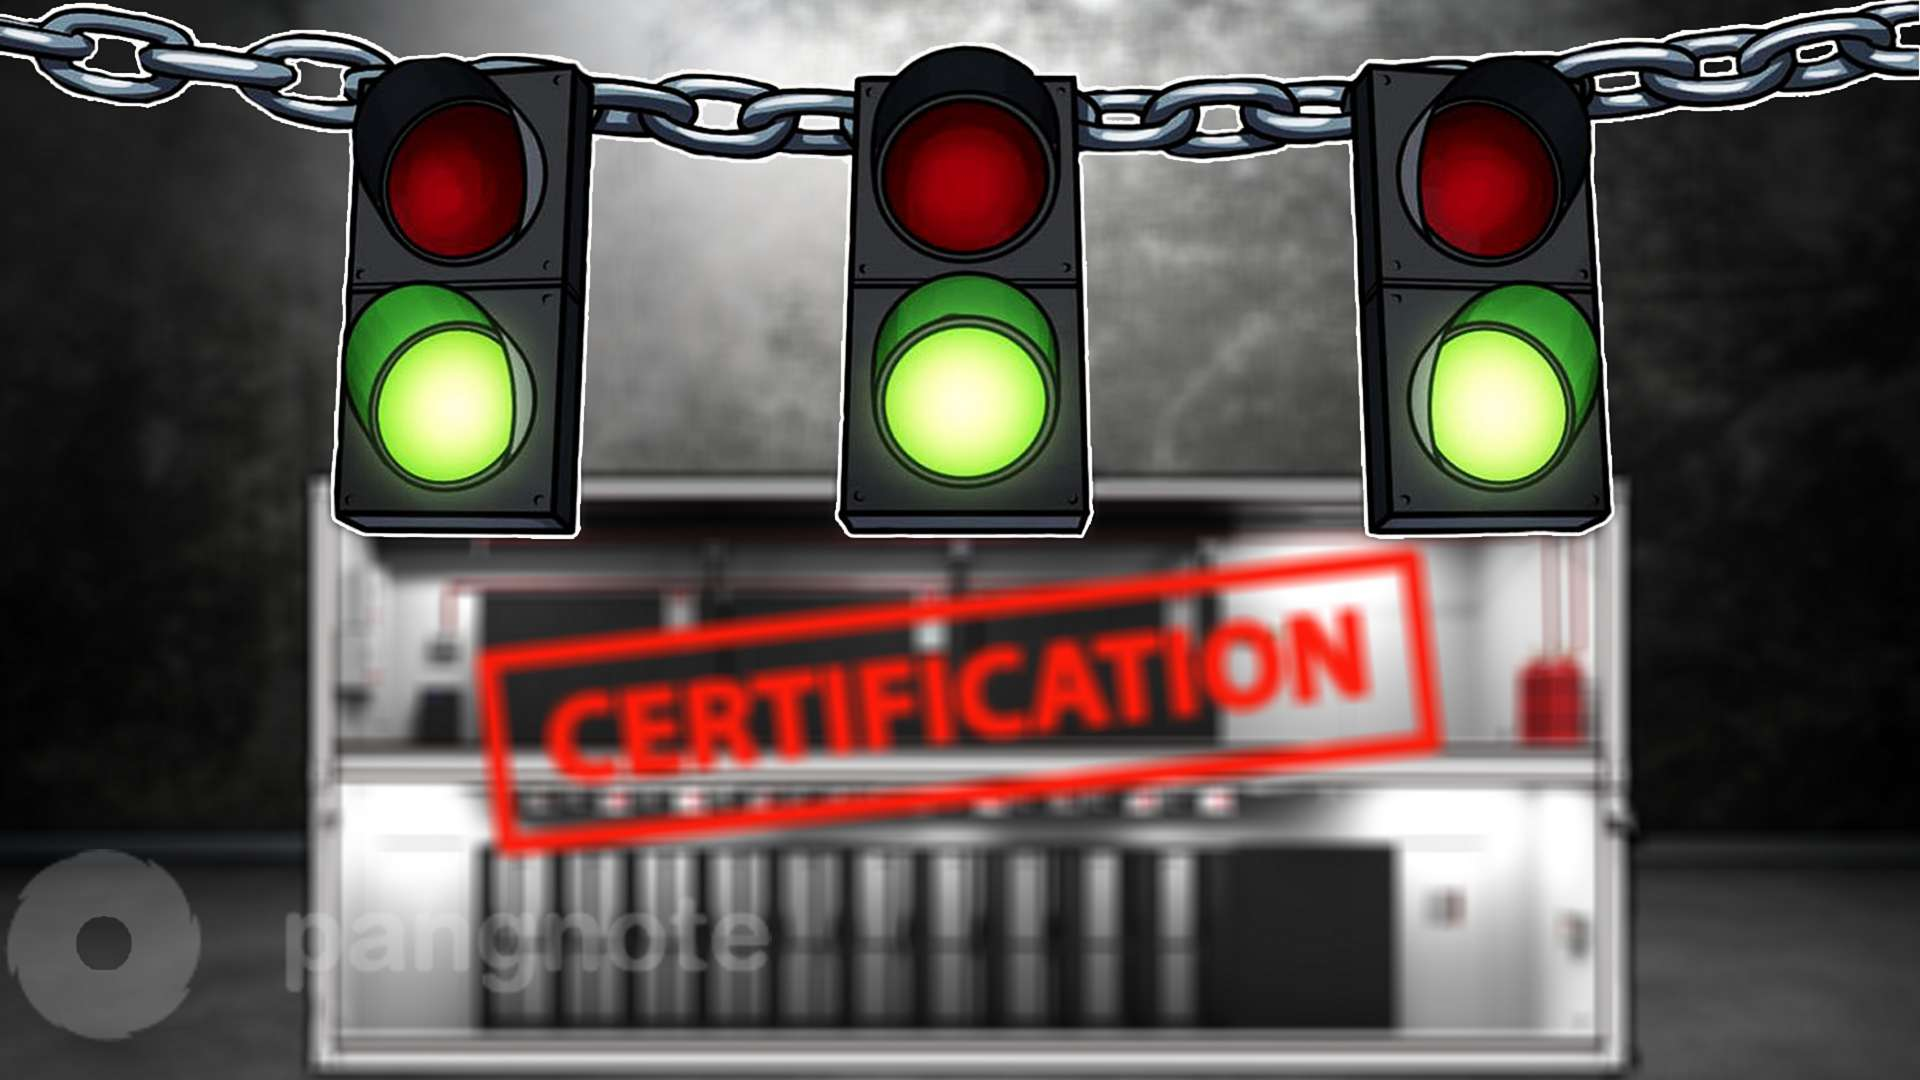 Certification of modular data centers